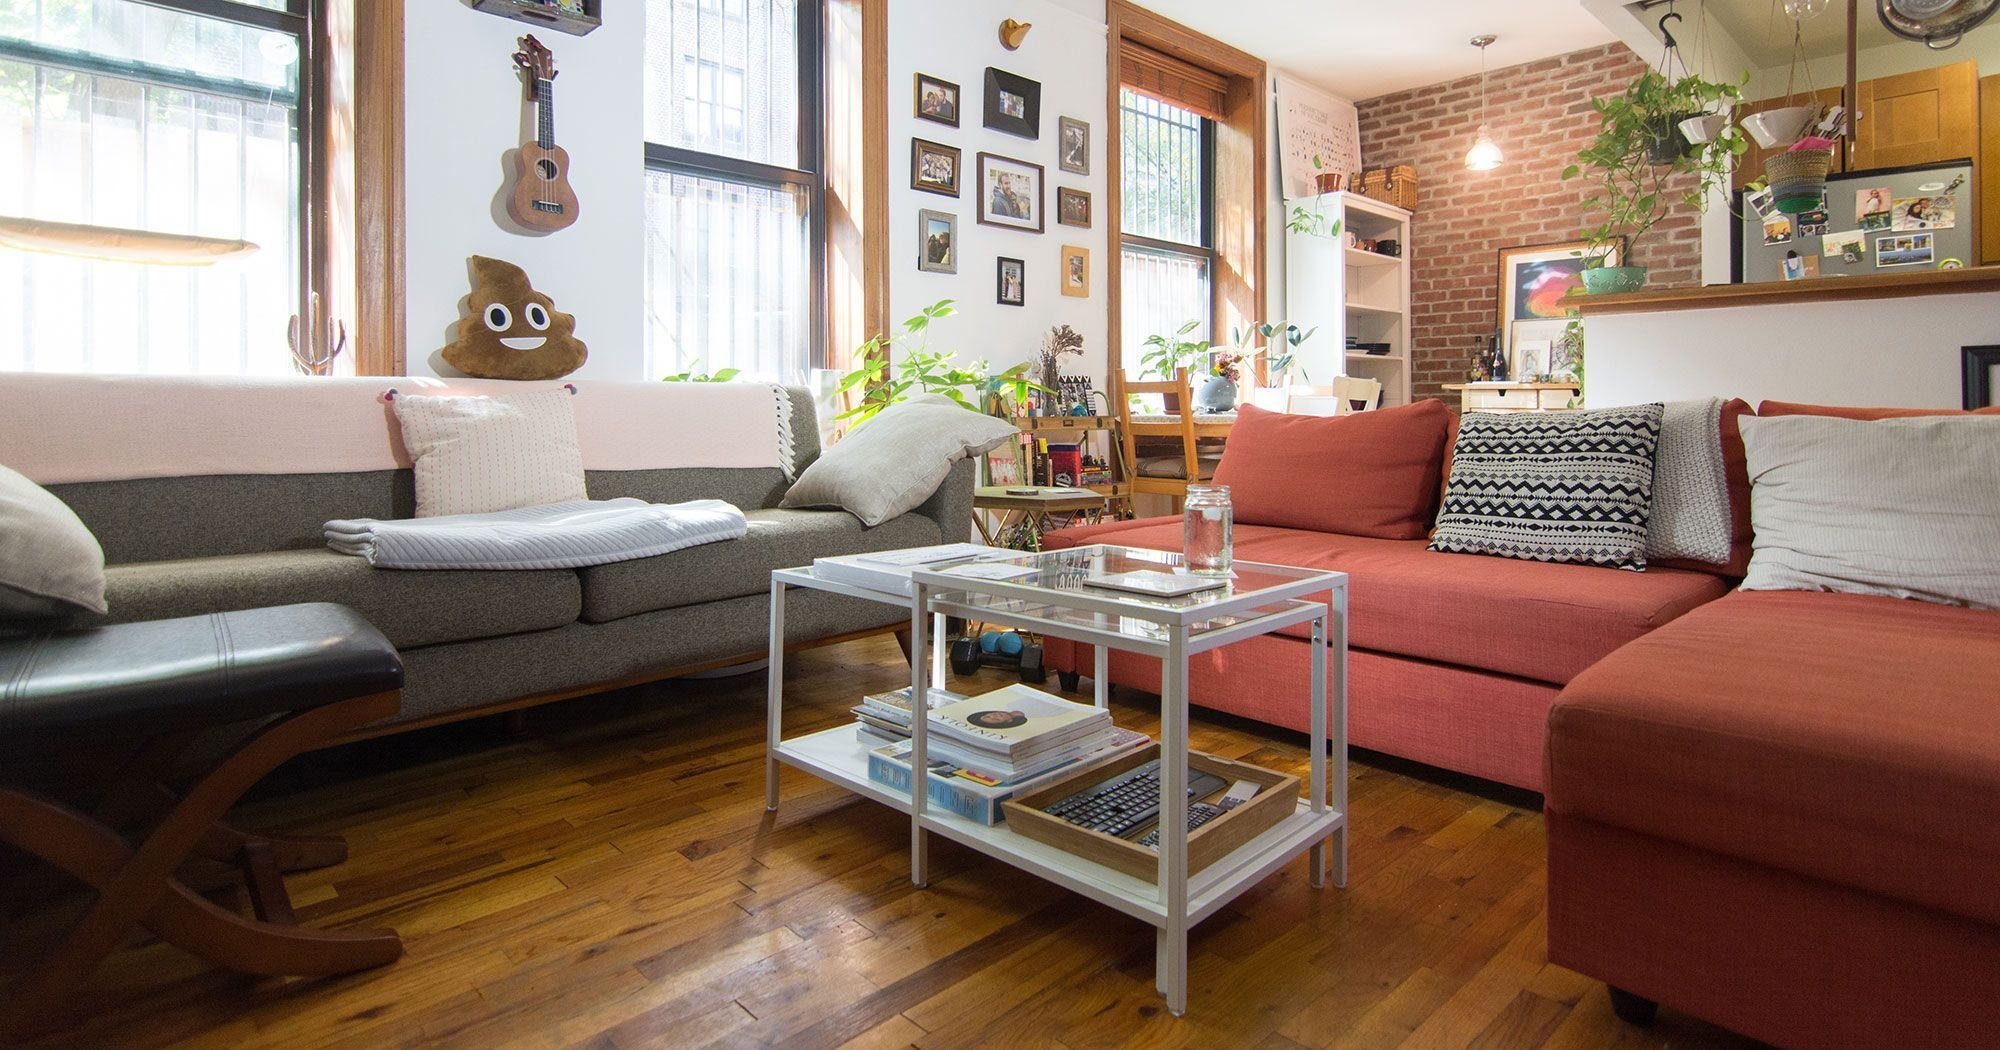 Best One Bedroom Apartment Home Tour Video Brooklyn New York With Pictures